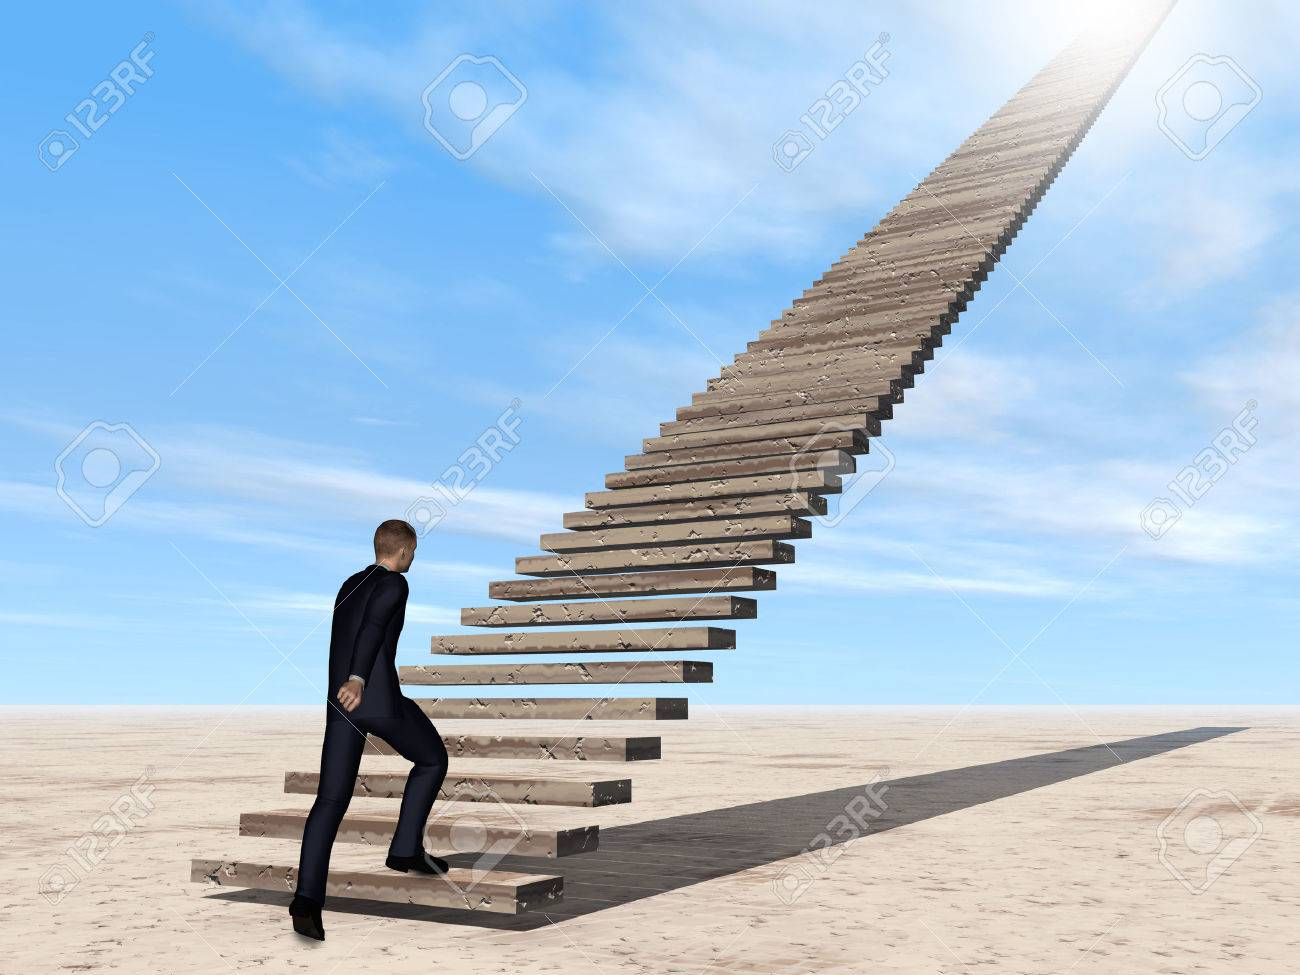 Conceptual 3D business man walking or climbing stair on sky background with clouds - 50899642